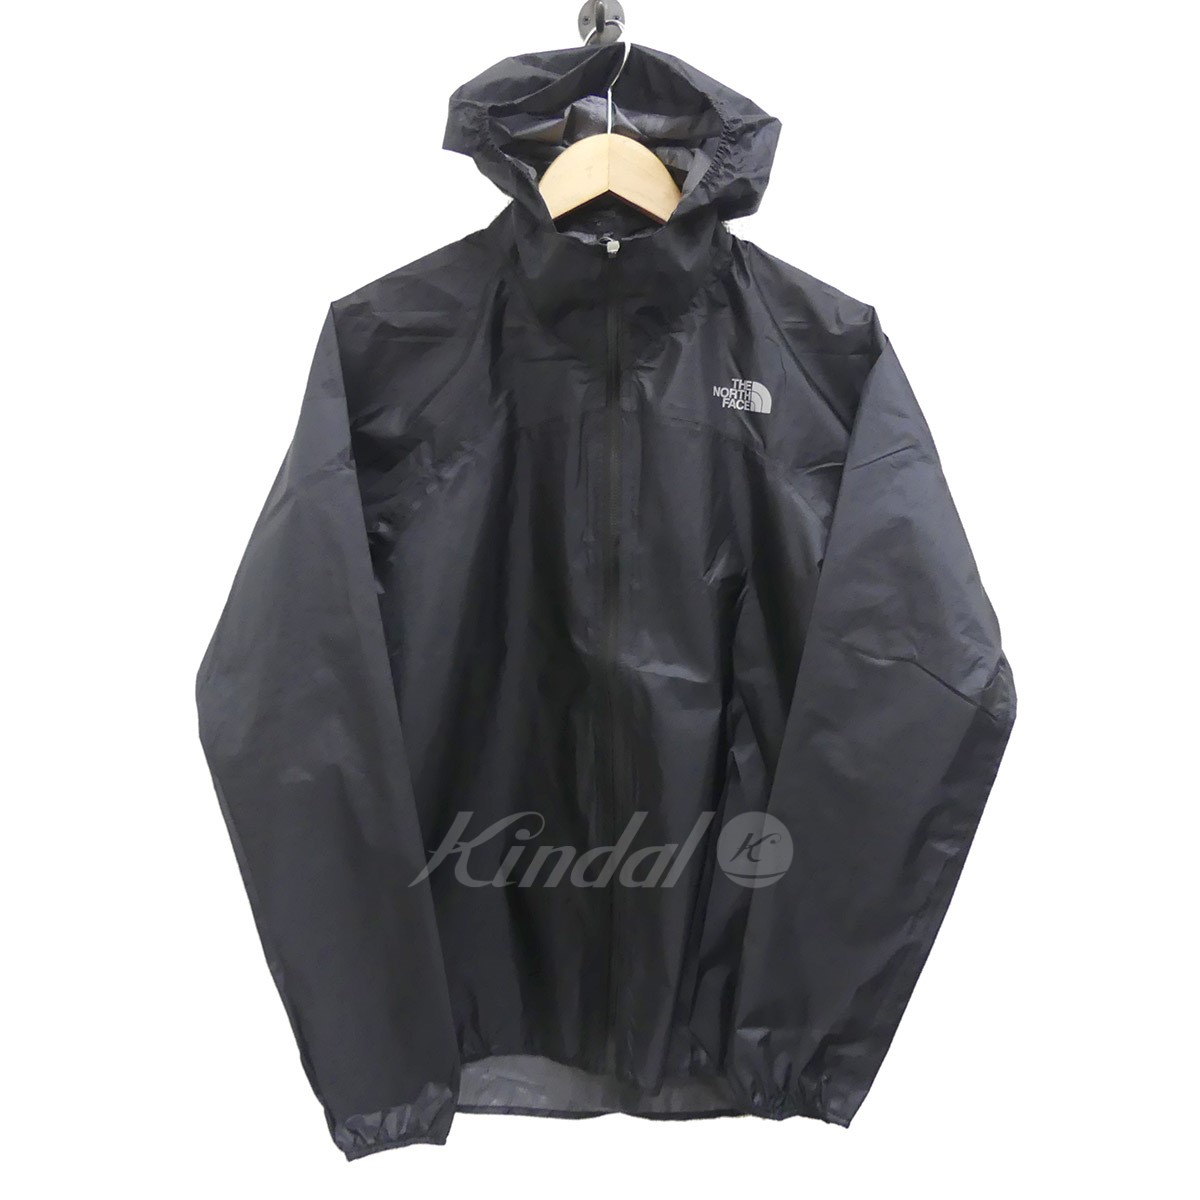 b719685aa THE NORTH FACE nylon jacket STRIKE TRAIL HOODIE black size: M (the North  Face)